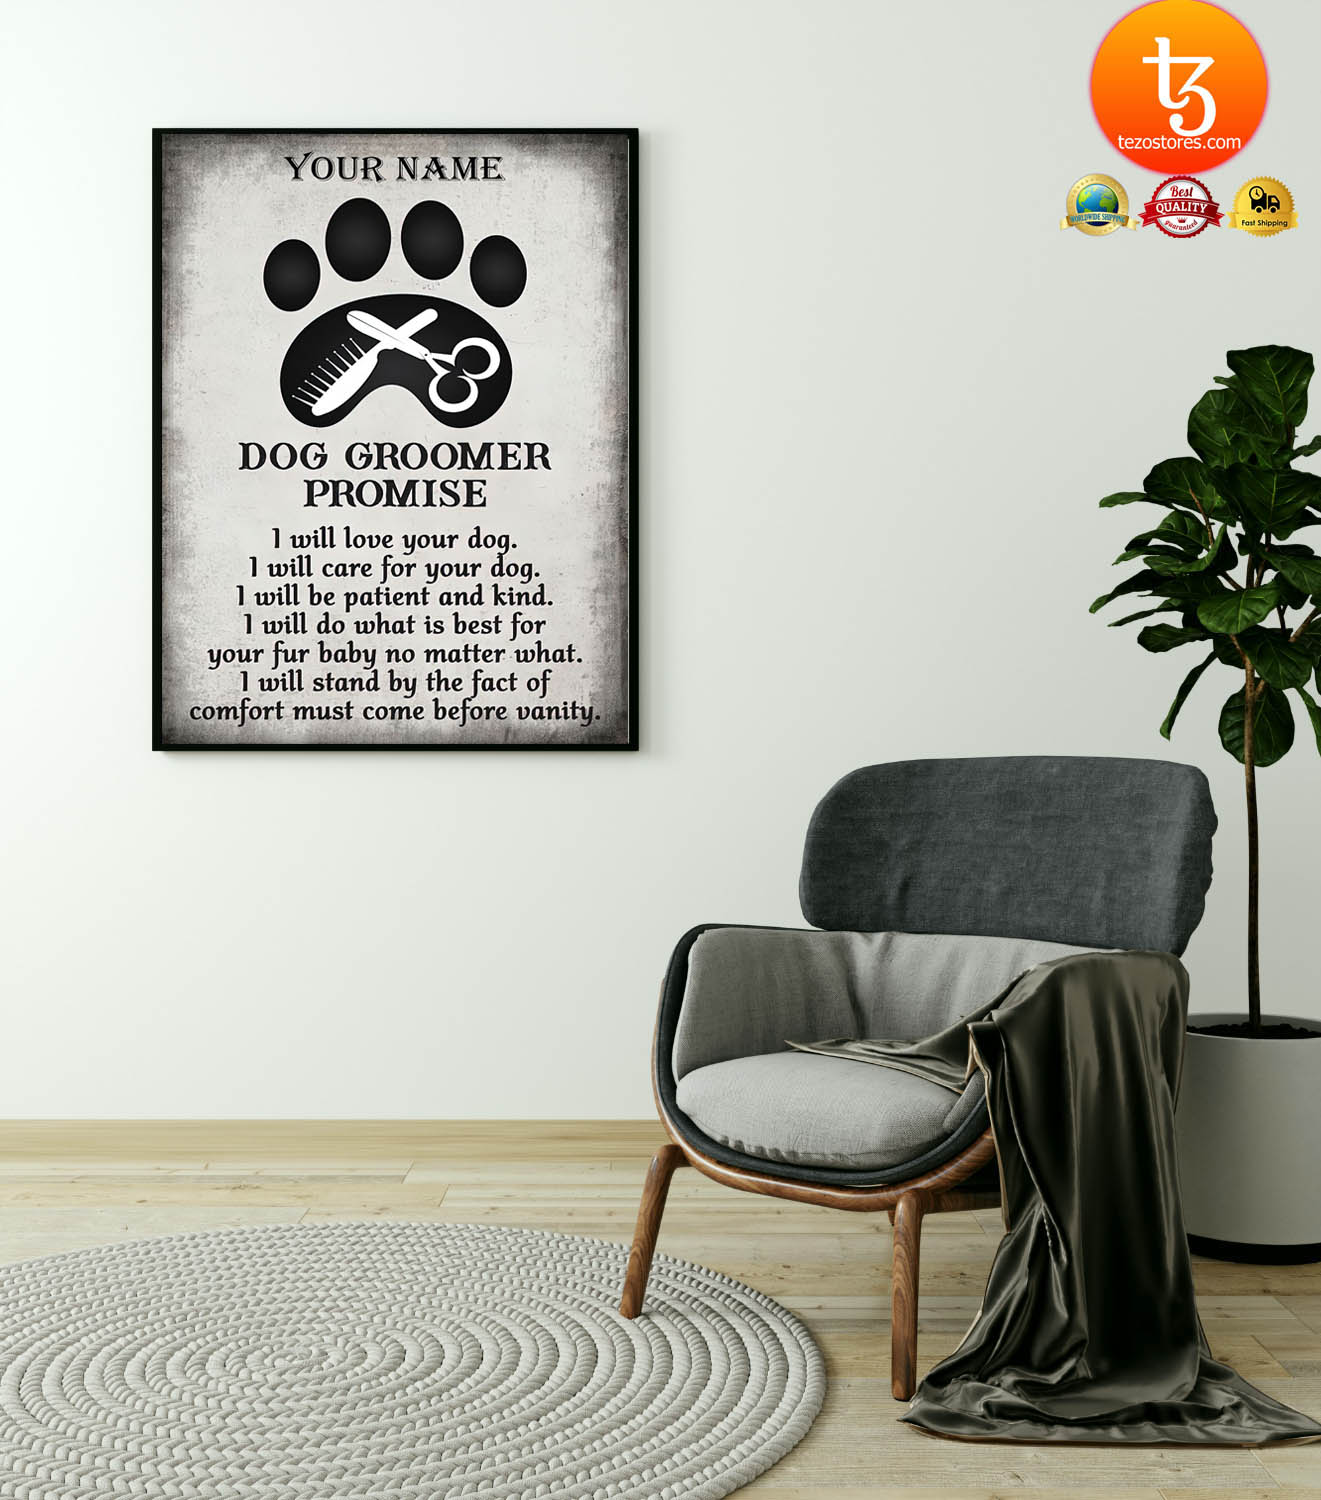 Dog groomer promise I will love your dog I will care for your dog custom name poster 21